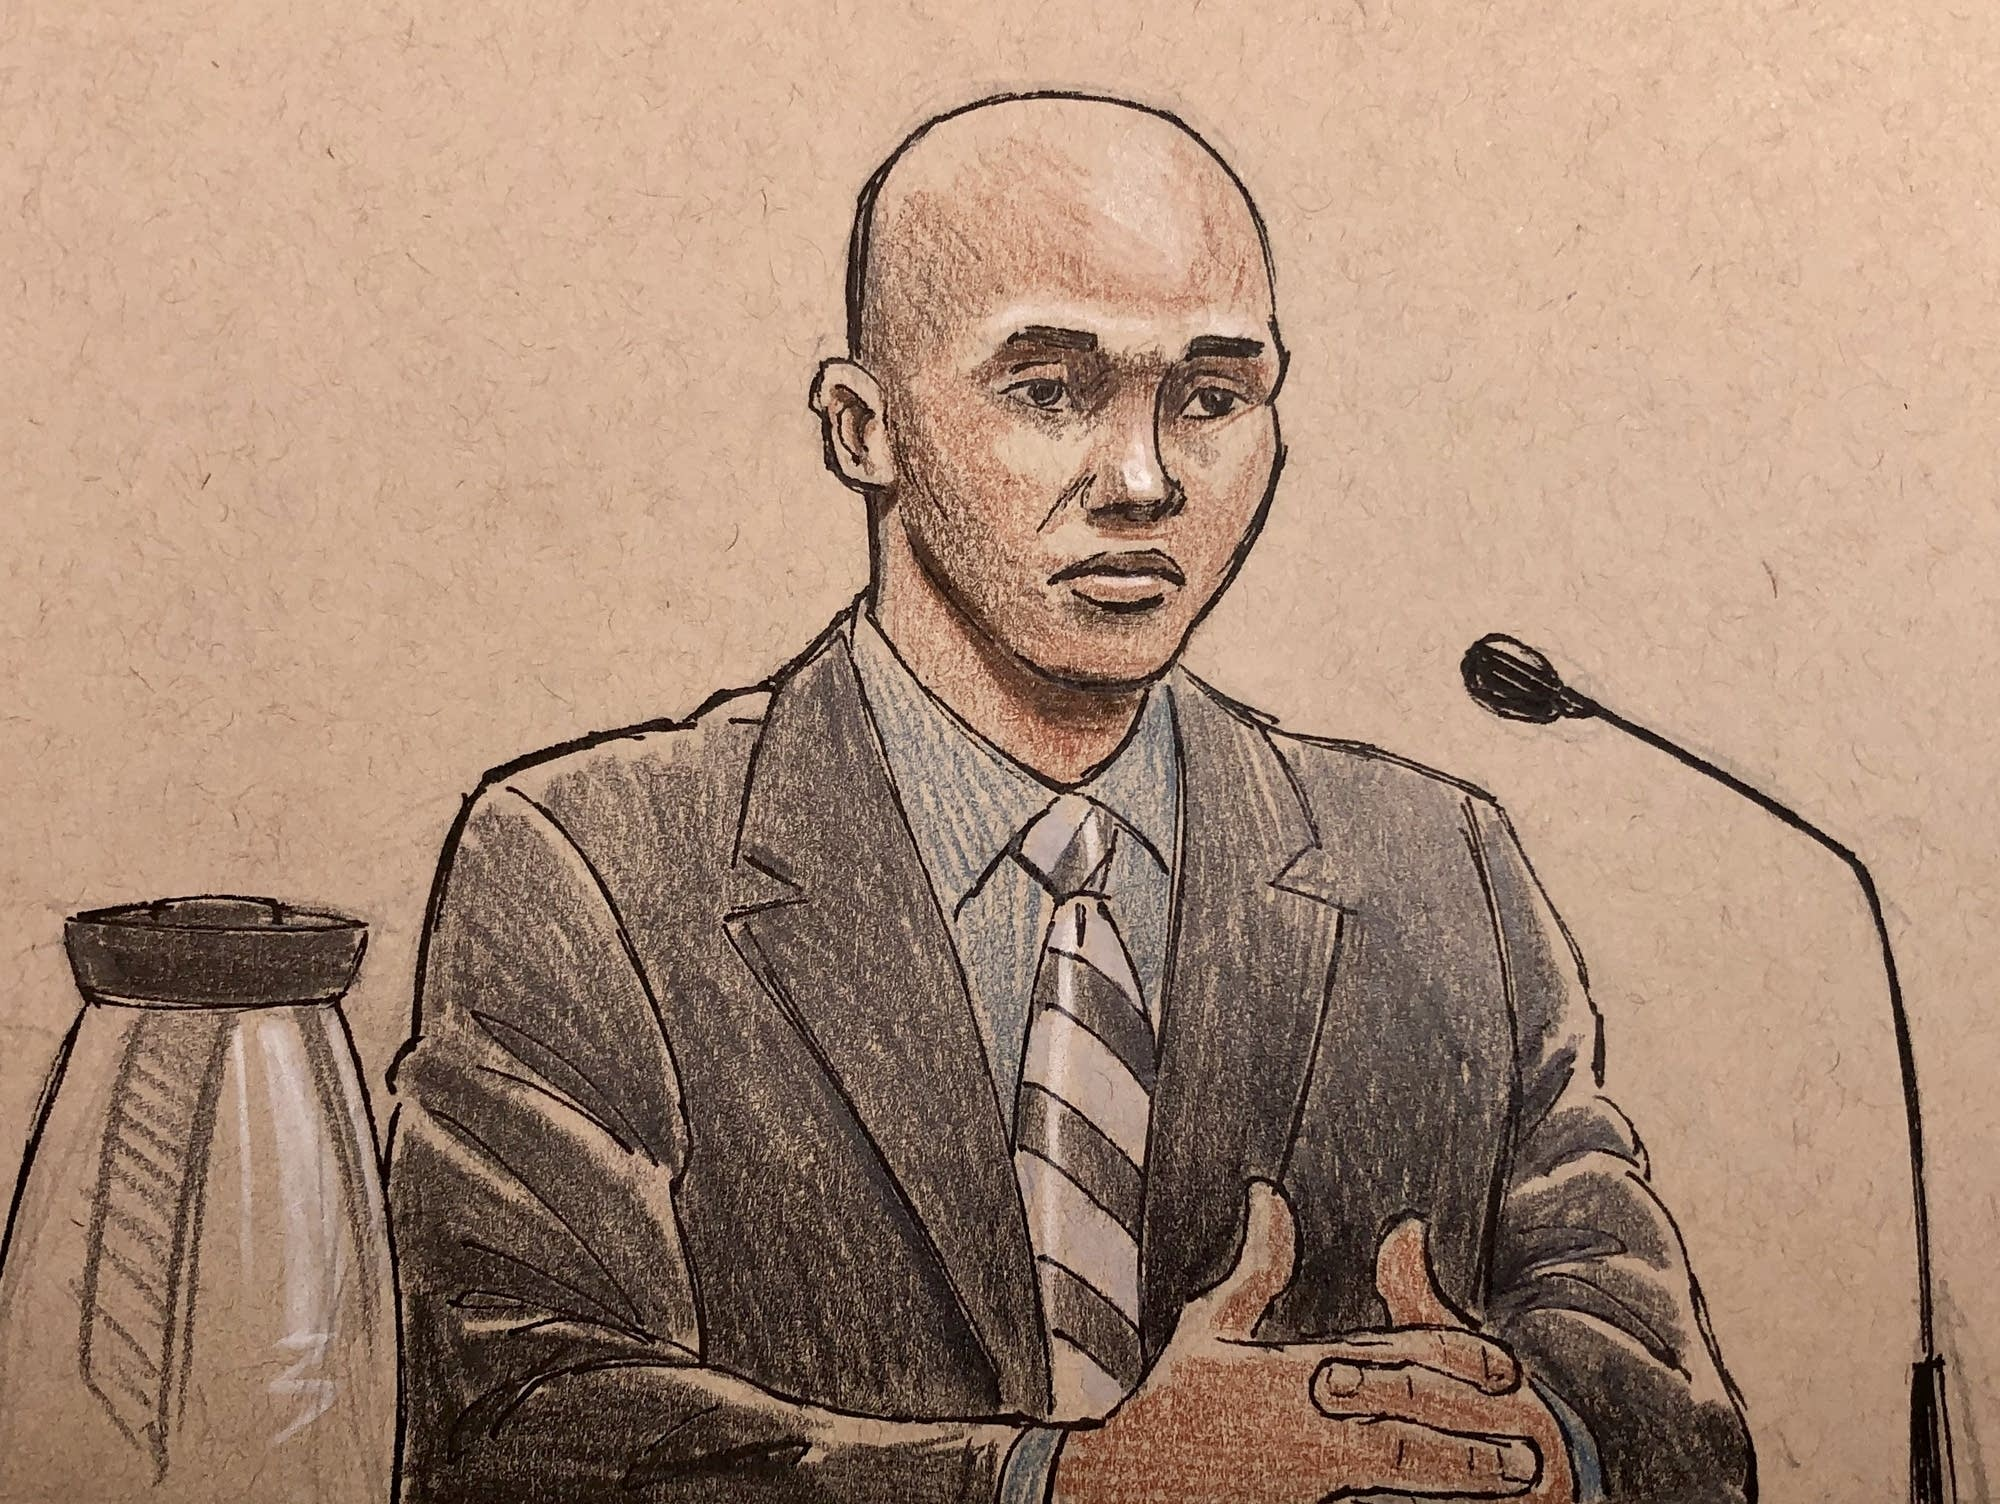 Mohamed Noor takes the stand at his trial.